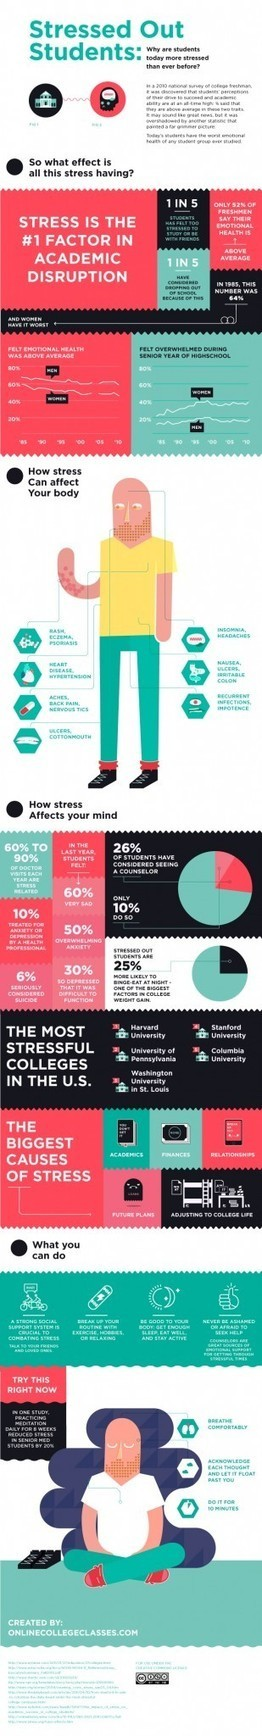 Stressed Out Students Infographic | My English Website-Mark de Jong | Scoop.it